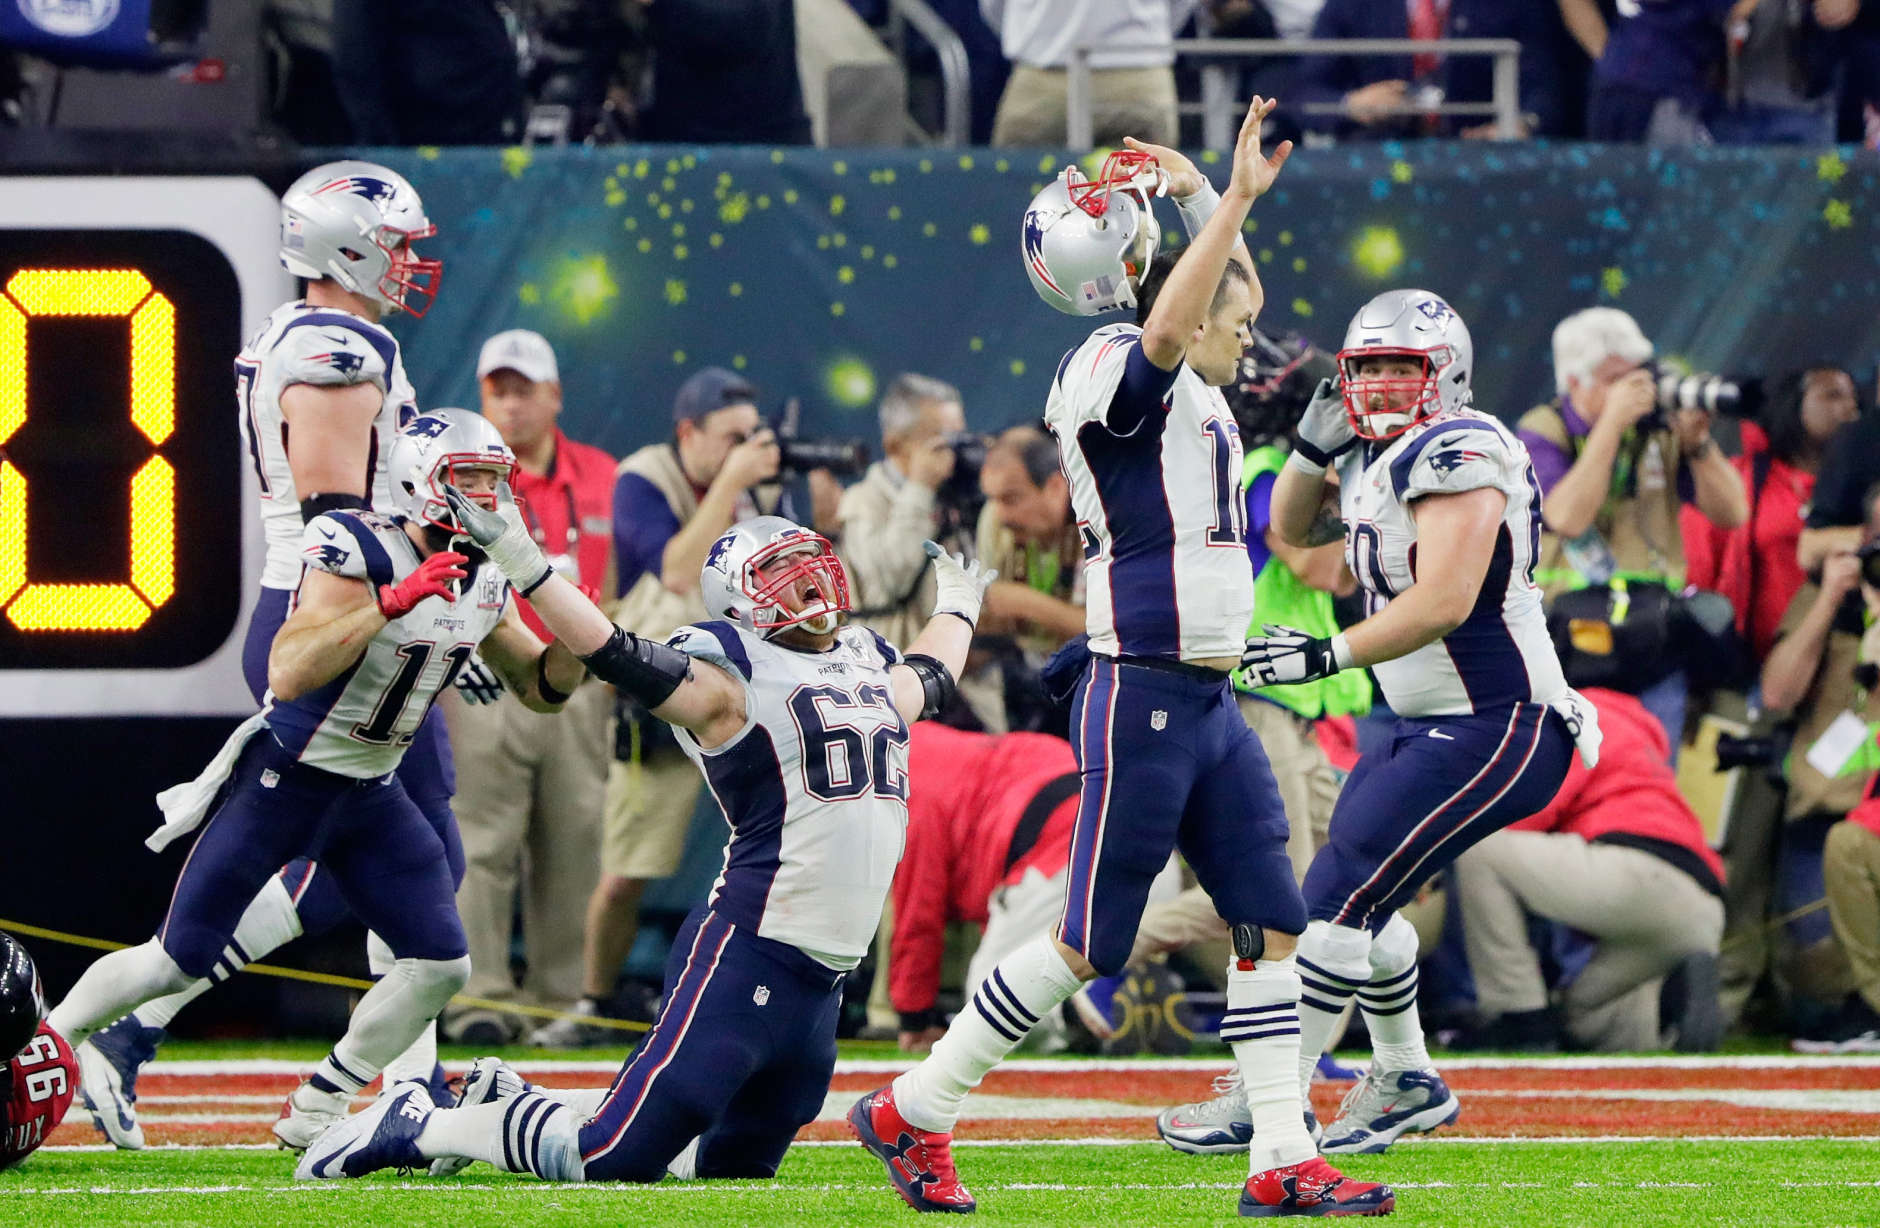 HOUSTON, TX - FEBRUARY 05:  Tom Brady #12 of the New England Patriots reacts after defeating the Atlanta Falcons 34-28 in overtime during Super Bowl 51 at NRG Stadium on February 5, 2017 in Houston, Texas.  (Photo by Jamie Squire/Getty Images)